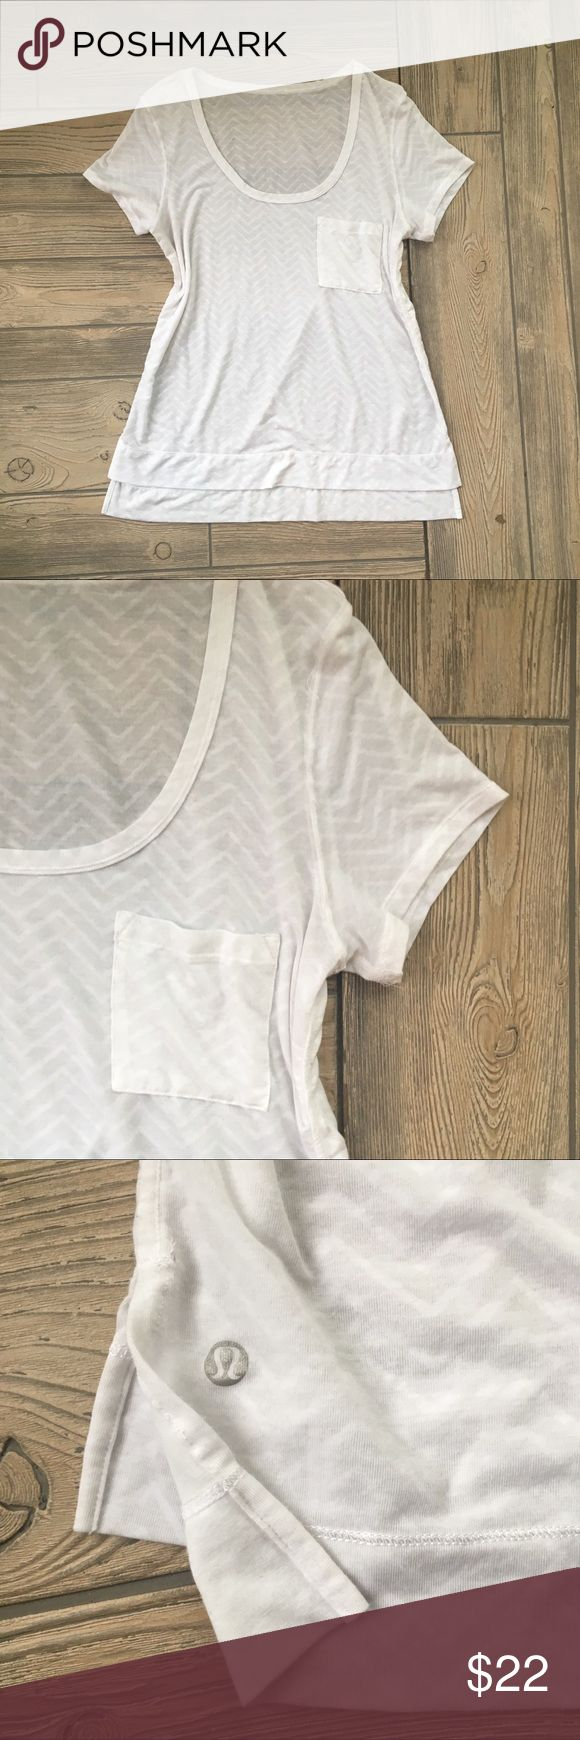 Lululemon Tee Shirt Pocket White Short Sleeve Lululemon Perfect Layer Tee Shirt Chevron Pocket White Short Sleeve Sheet Lightweight Size 6. lululemon athletica Tops Tees - Short Sleeve